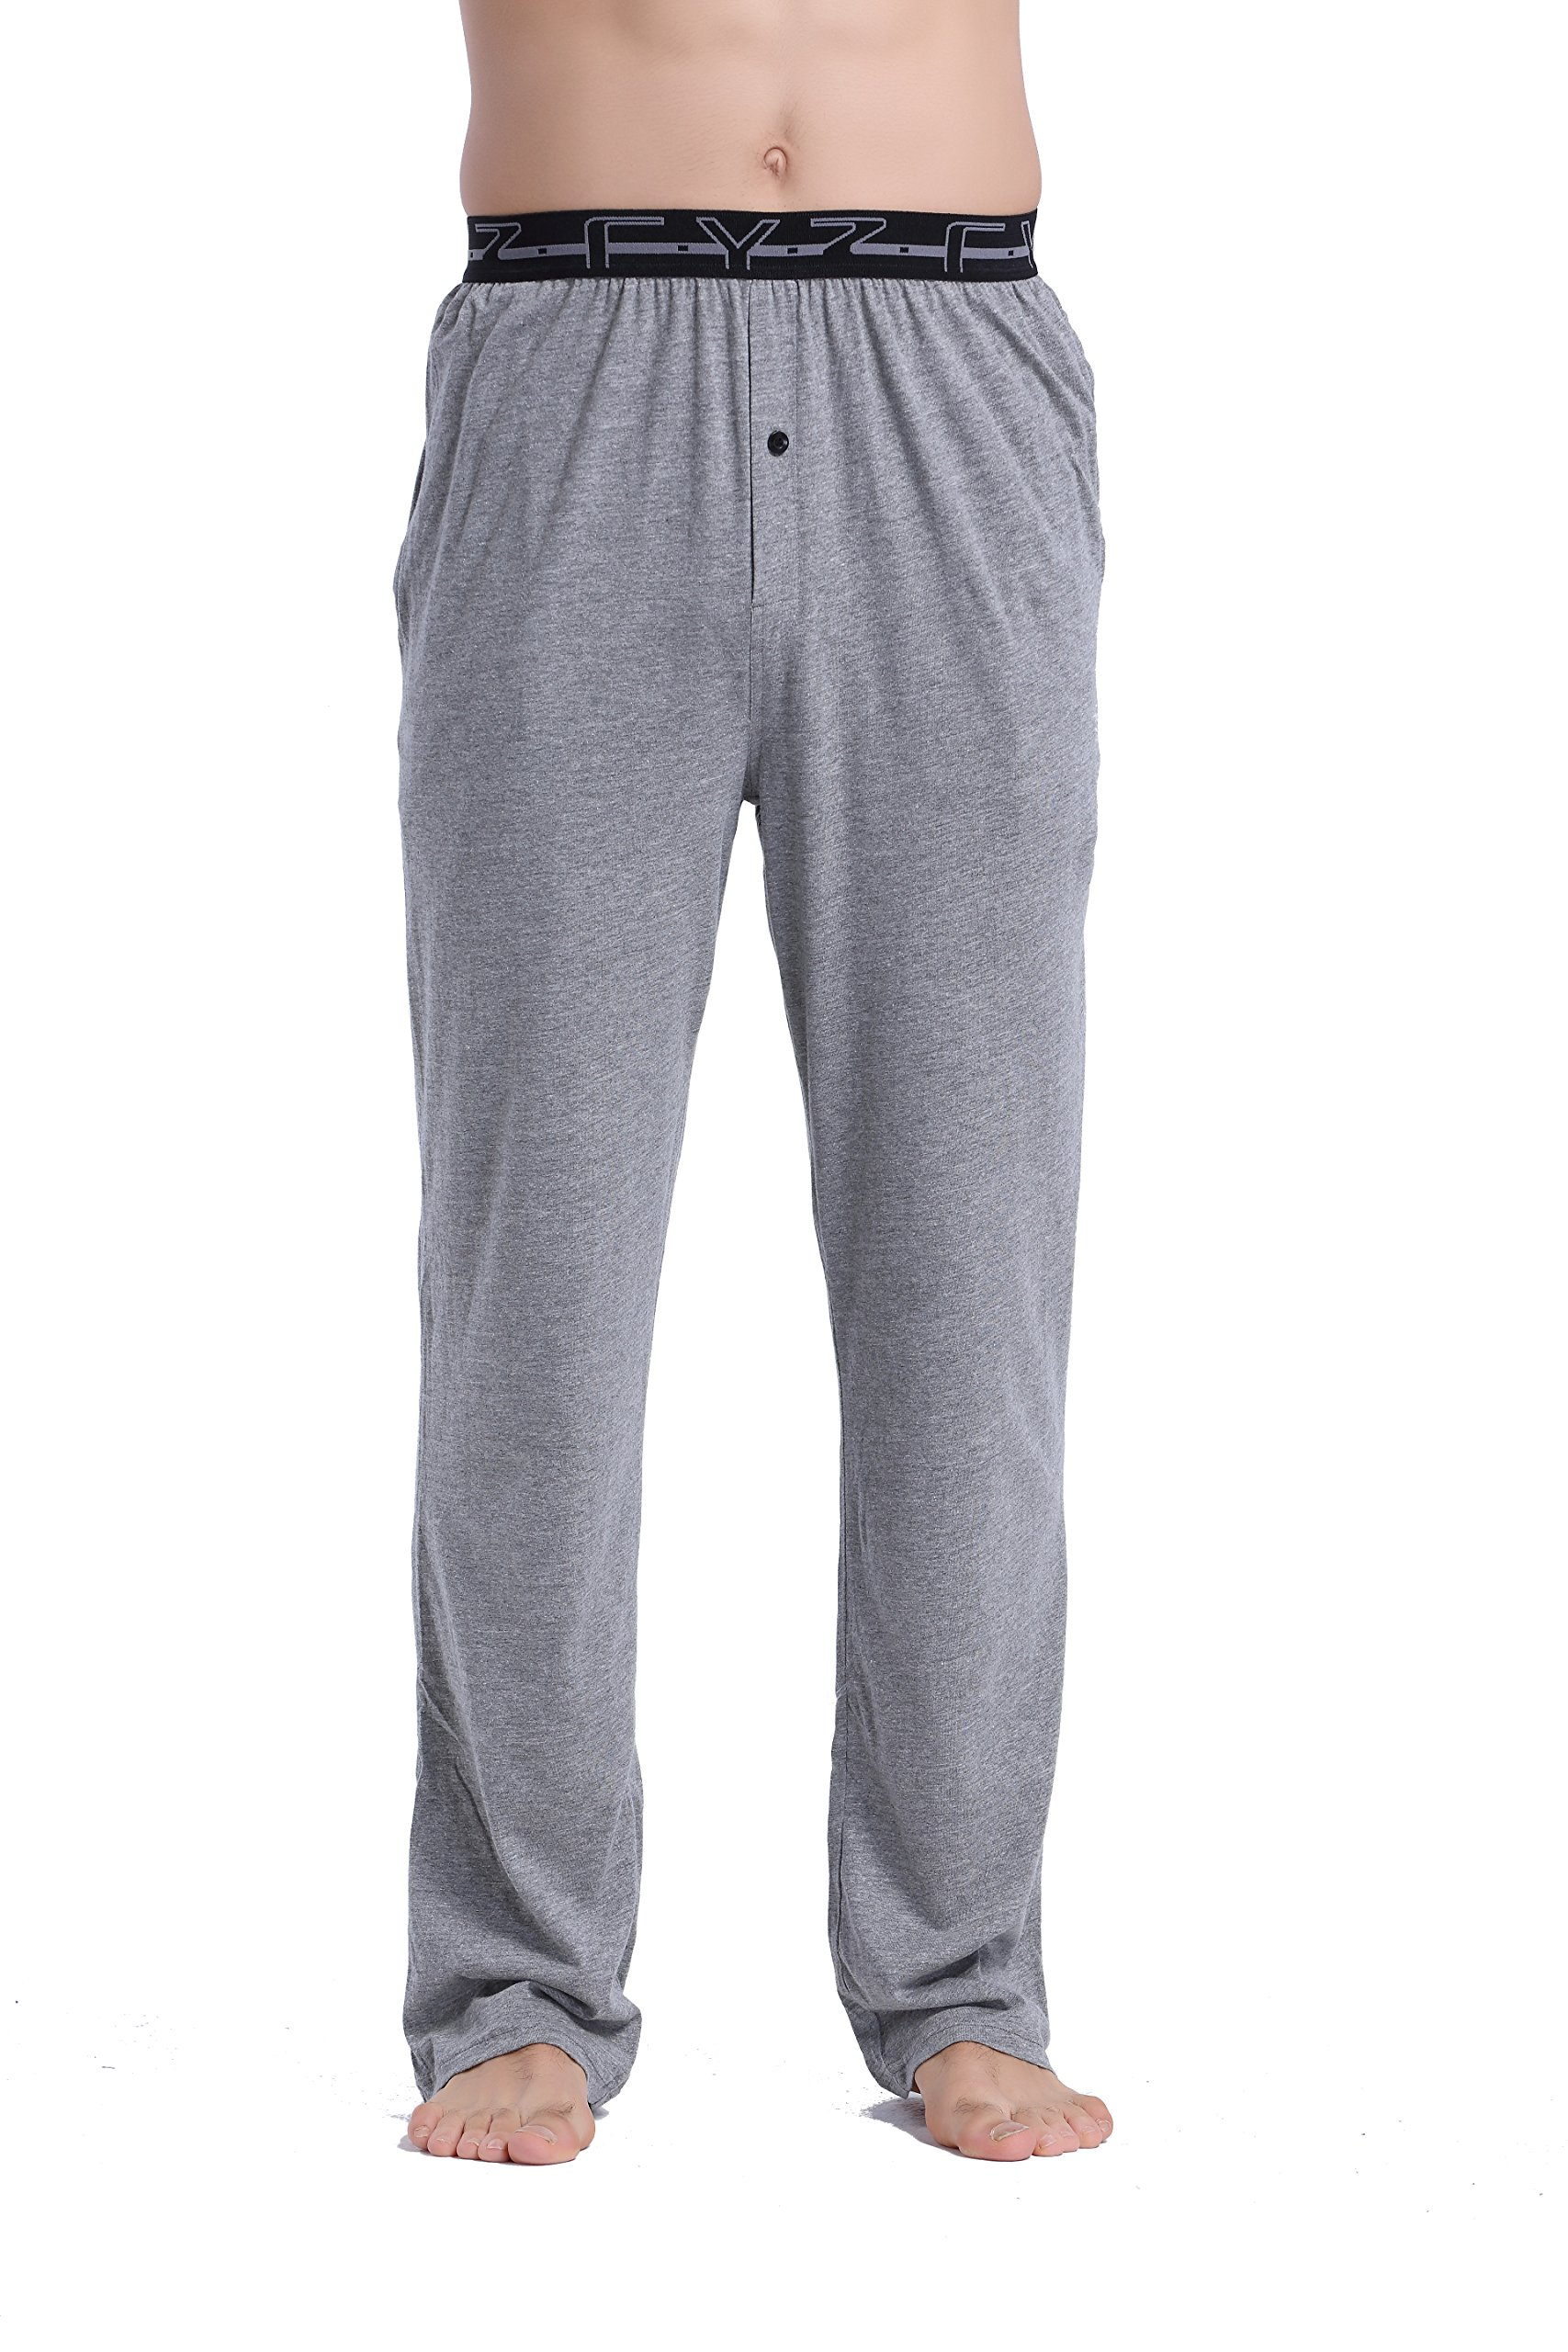 CYZ Men's 100% Cotton Jersey Knit Pajama Pants with Elastic Waistband-Darkgrey-L by CYZ Collection (Image #1)